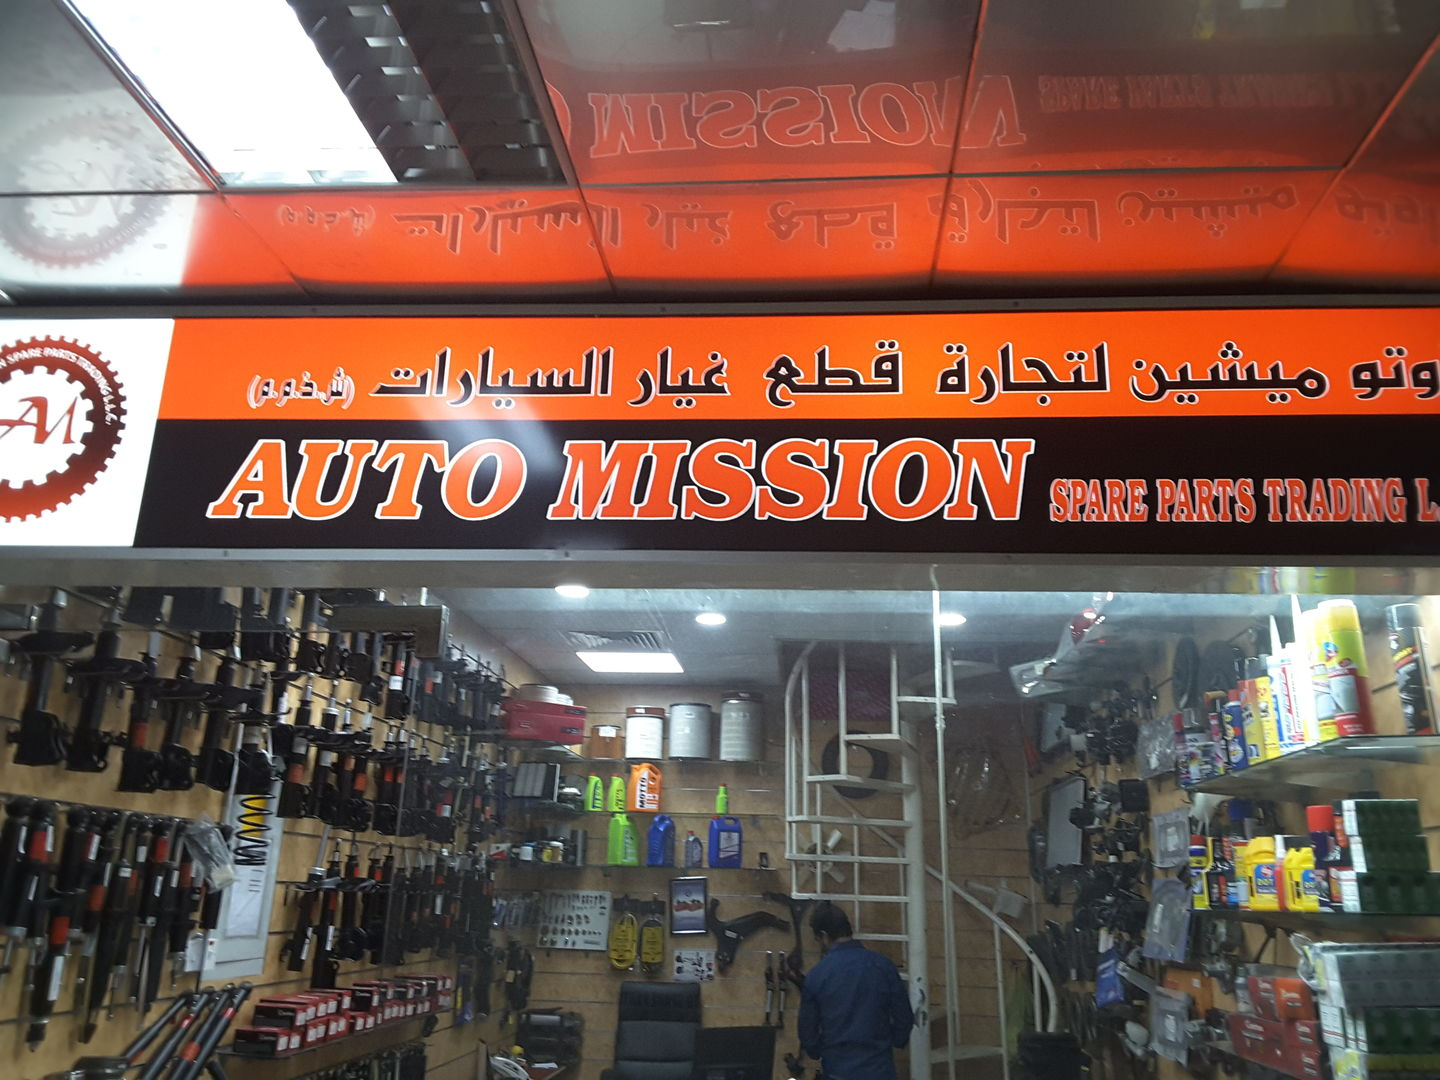 HiDubai-business-auto-mission-spare-parts-trading-transport-vehicle-services-auto-spare-parts-accessories-naif-dubai